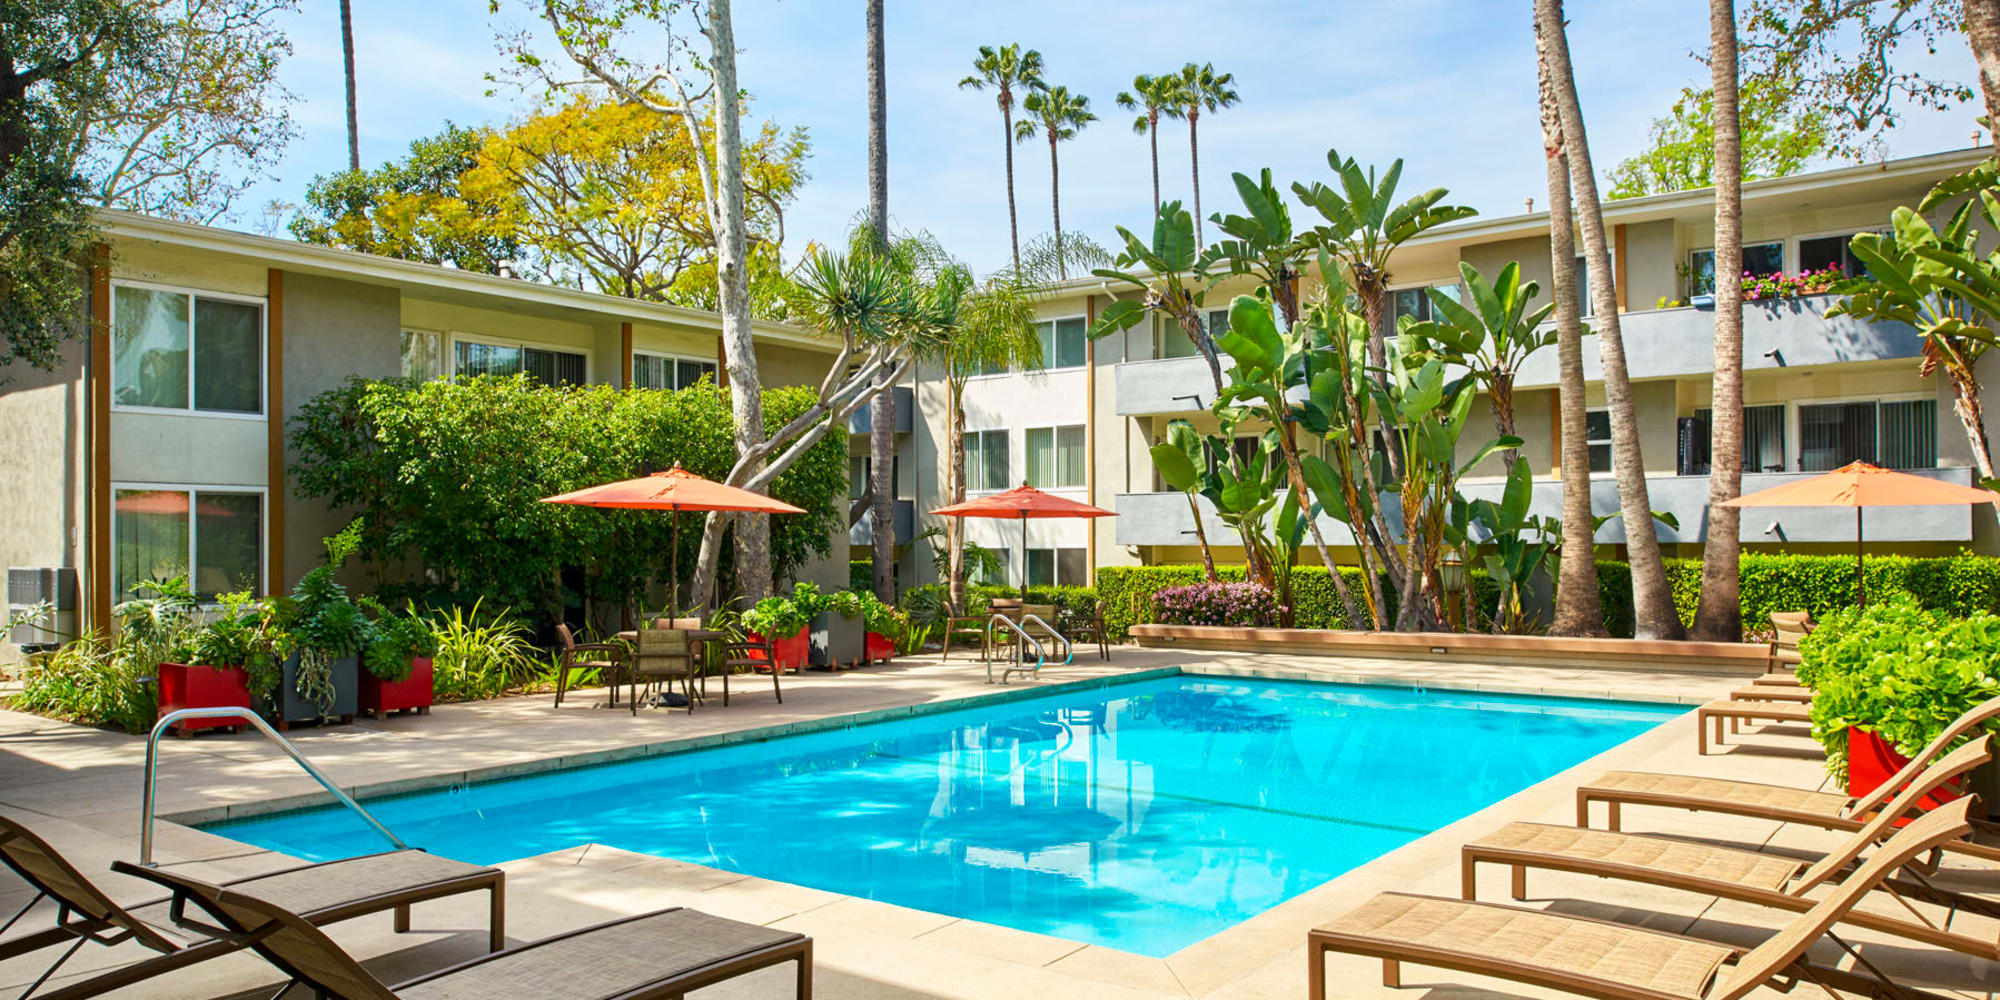 Beautiful morning at one of the resort-style swimming pools at West Park Village in Los Angeles, California